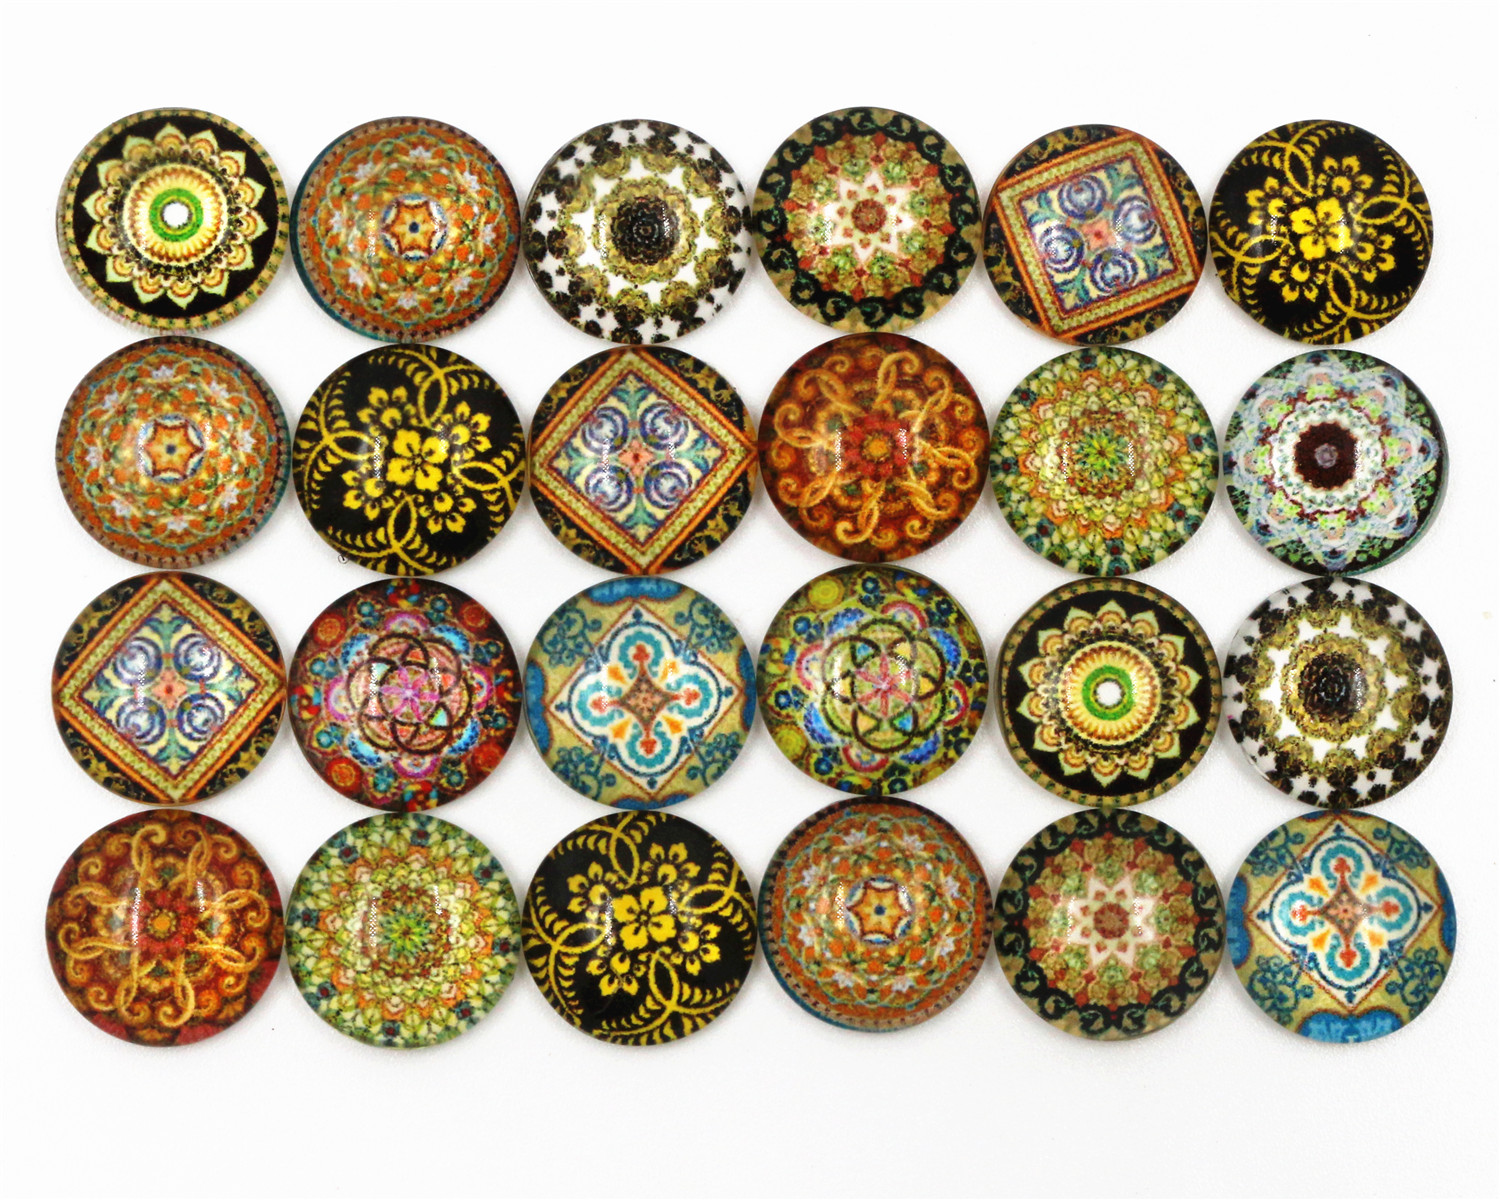 50pcs/Lot 12mm Photo Glass Cabochons Mixed Totem Cabochons For Handmade Bracelet earrings necklace Bases Settings-C7-0350pcs/Lot 12mm Photo Glass Cabochons Mixed Totem Cabochons For Handmade Bracelet earrings necklace Bases Settings-C7-03